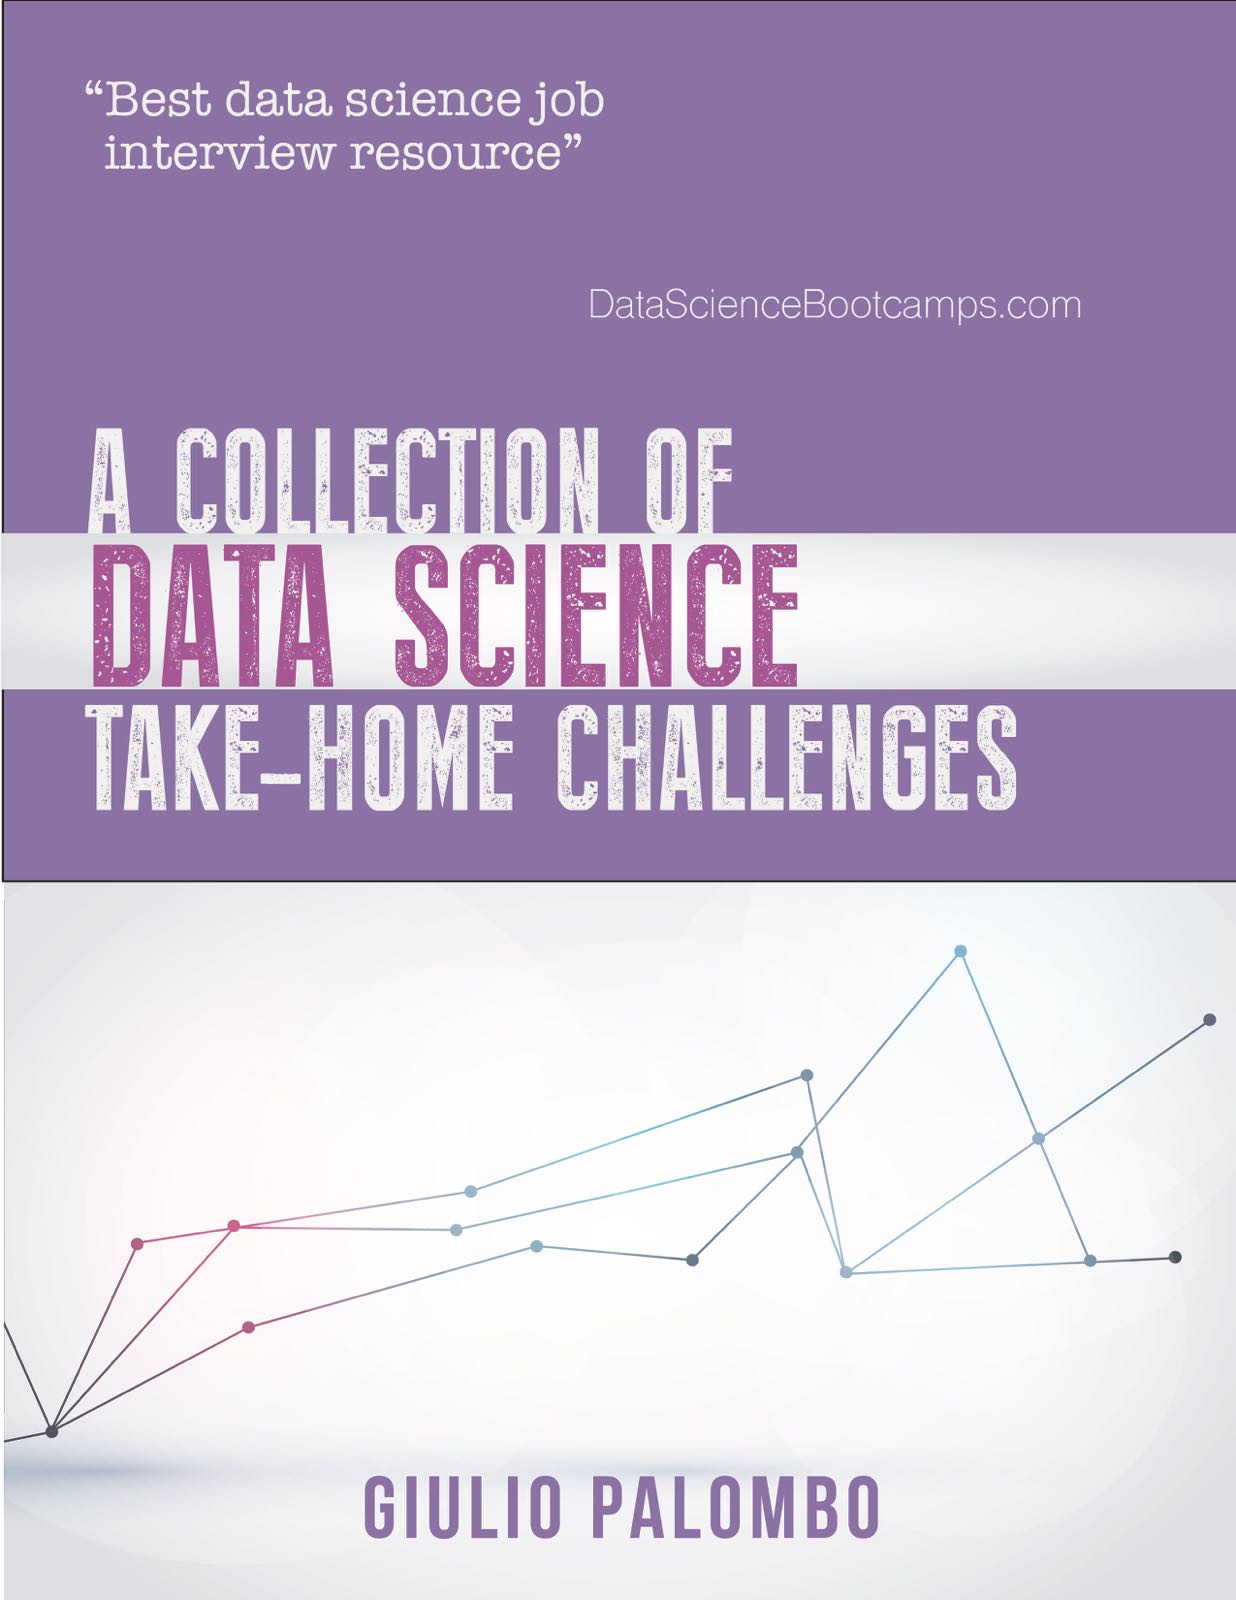 A Collection of Data Science Takehome Challenges - Job